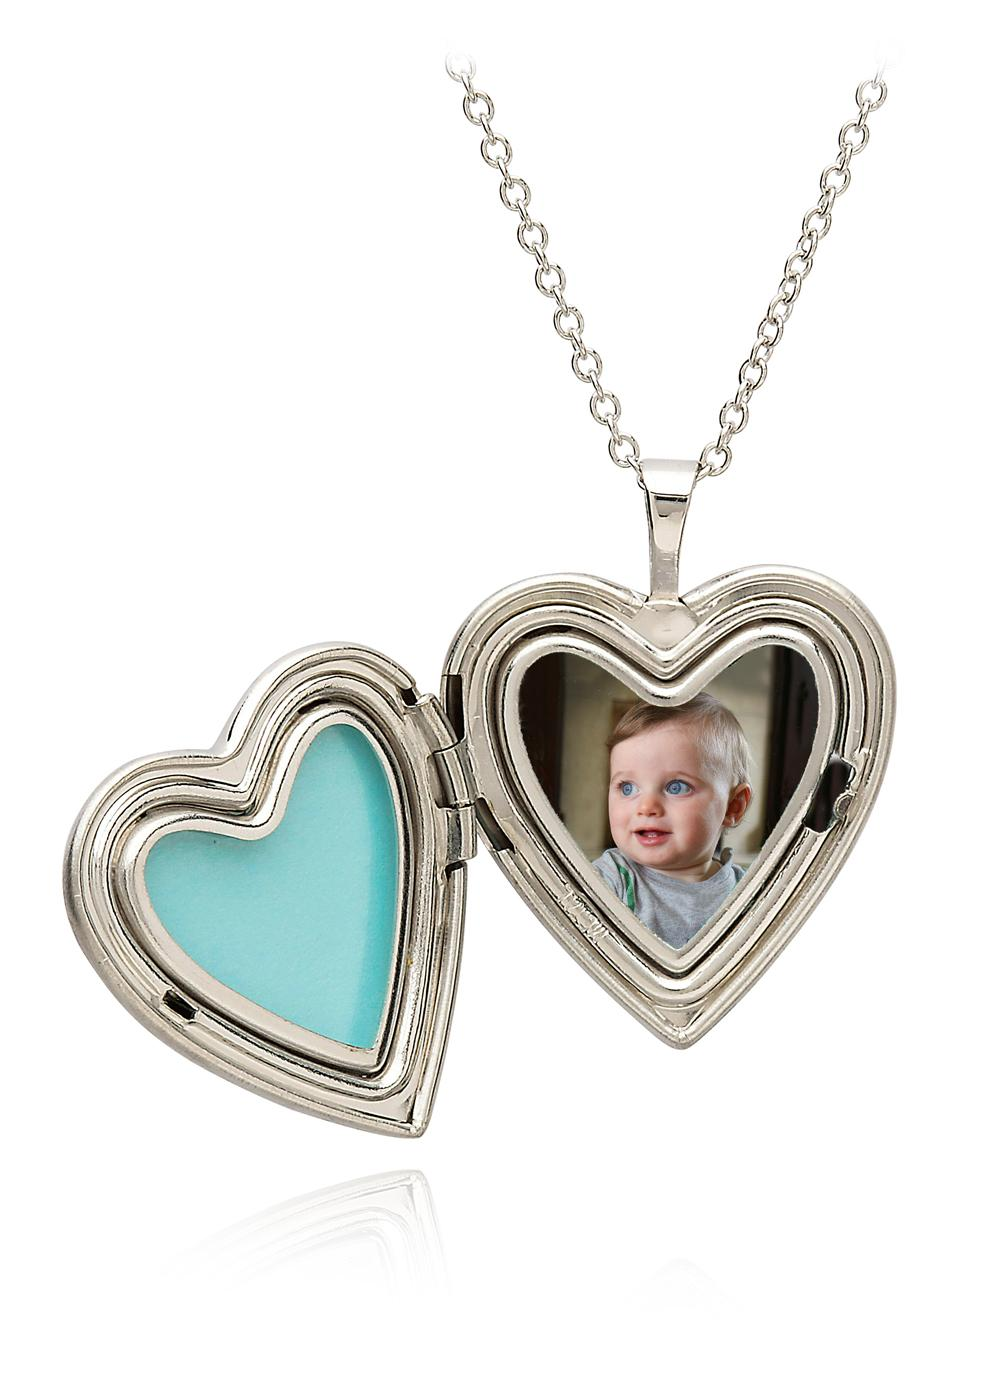 silver by product heart original open s hurleyburleyjunior girl sterling hurleyburley personalised lockets locket childrens